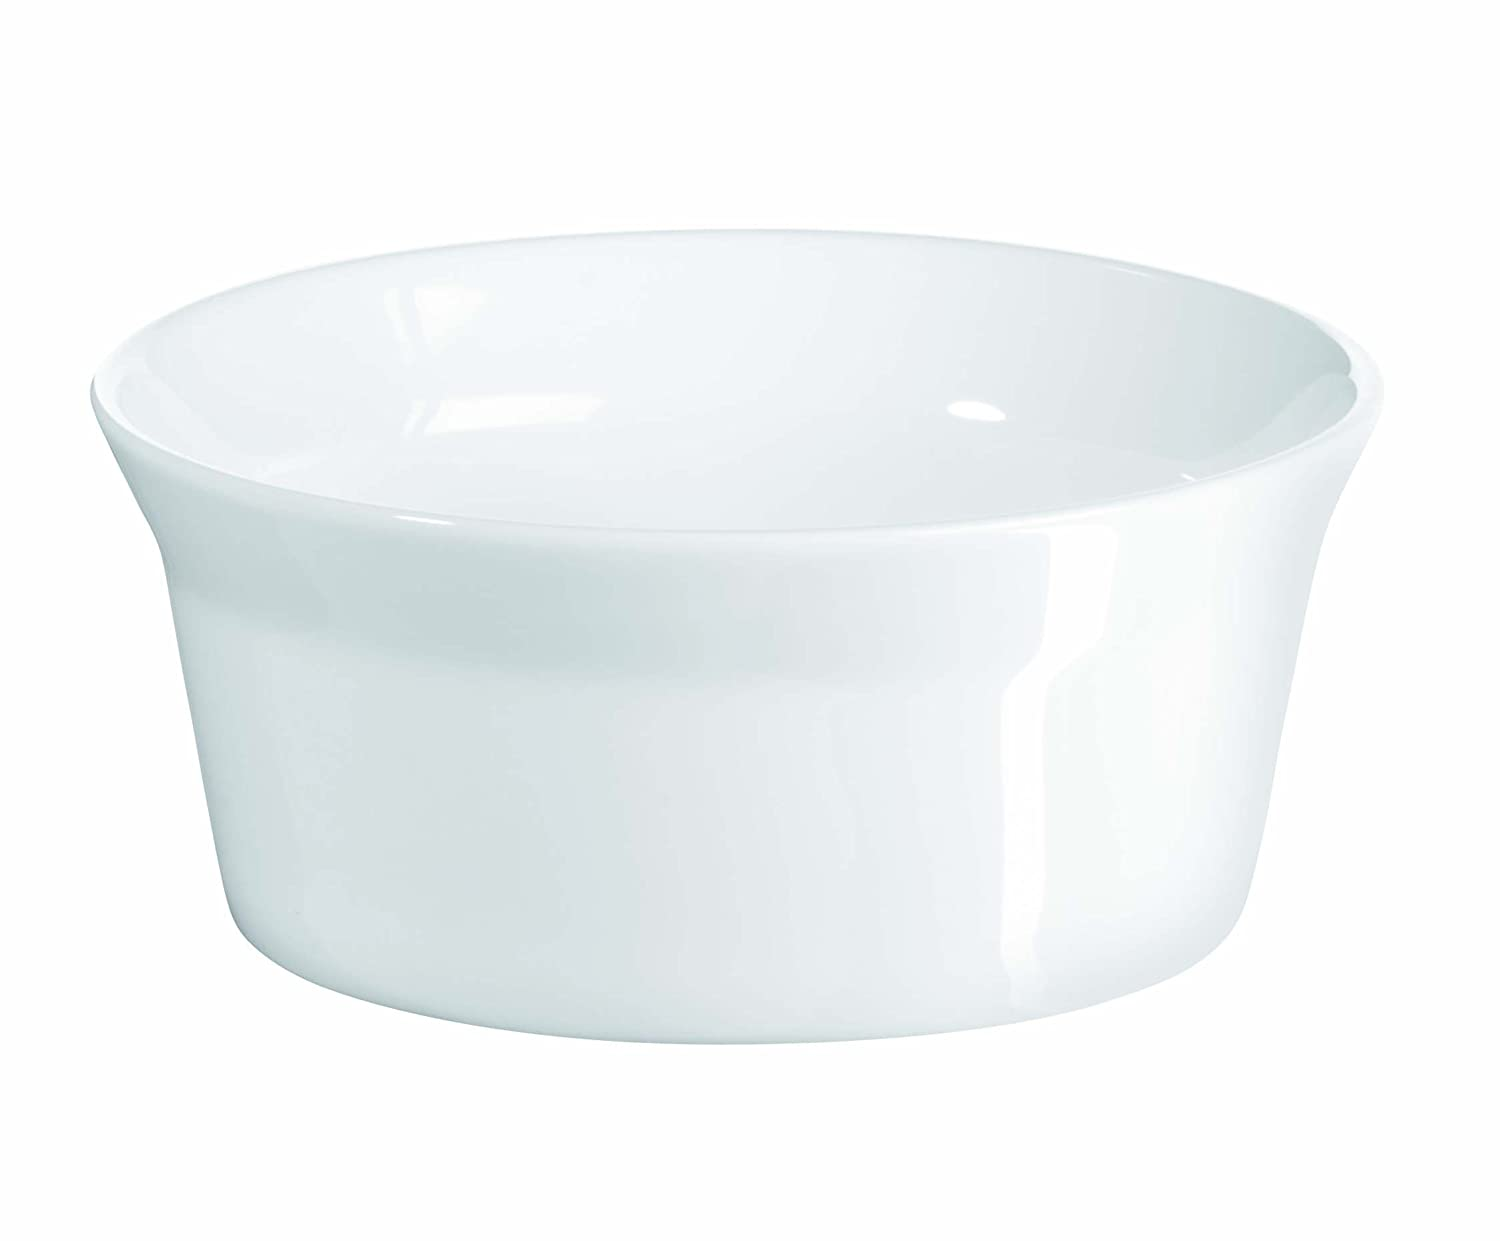 ASA Edition 250 Plus Porcelain Souffle Dish Round, 12cm dia, 5cm high ASA Selection 52010017